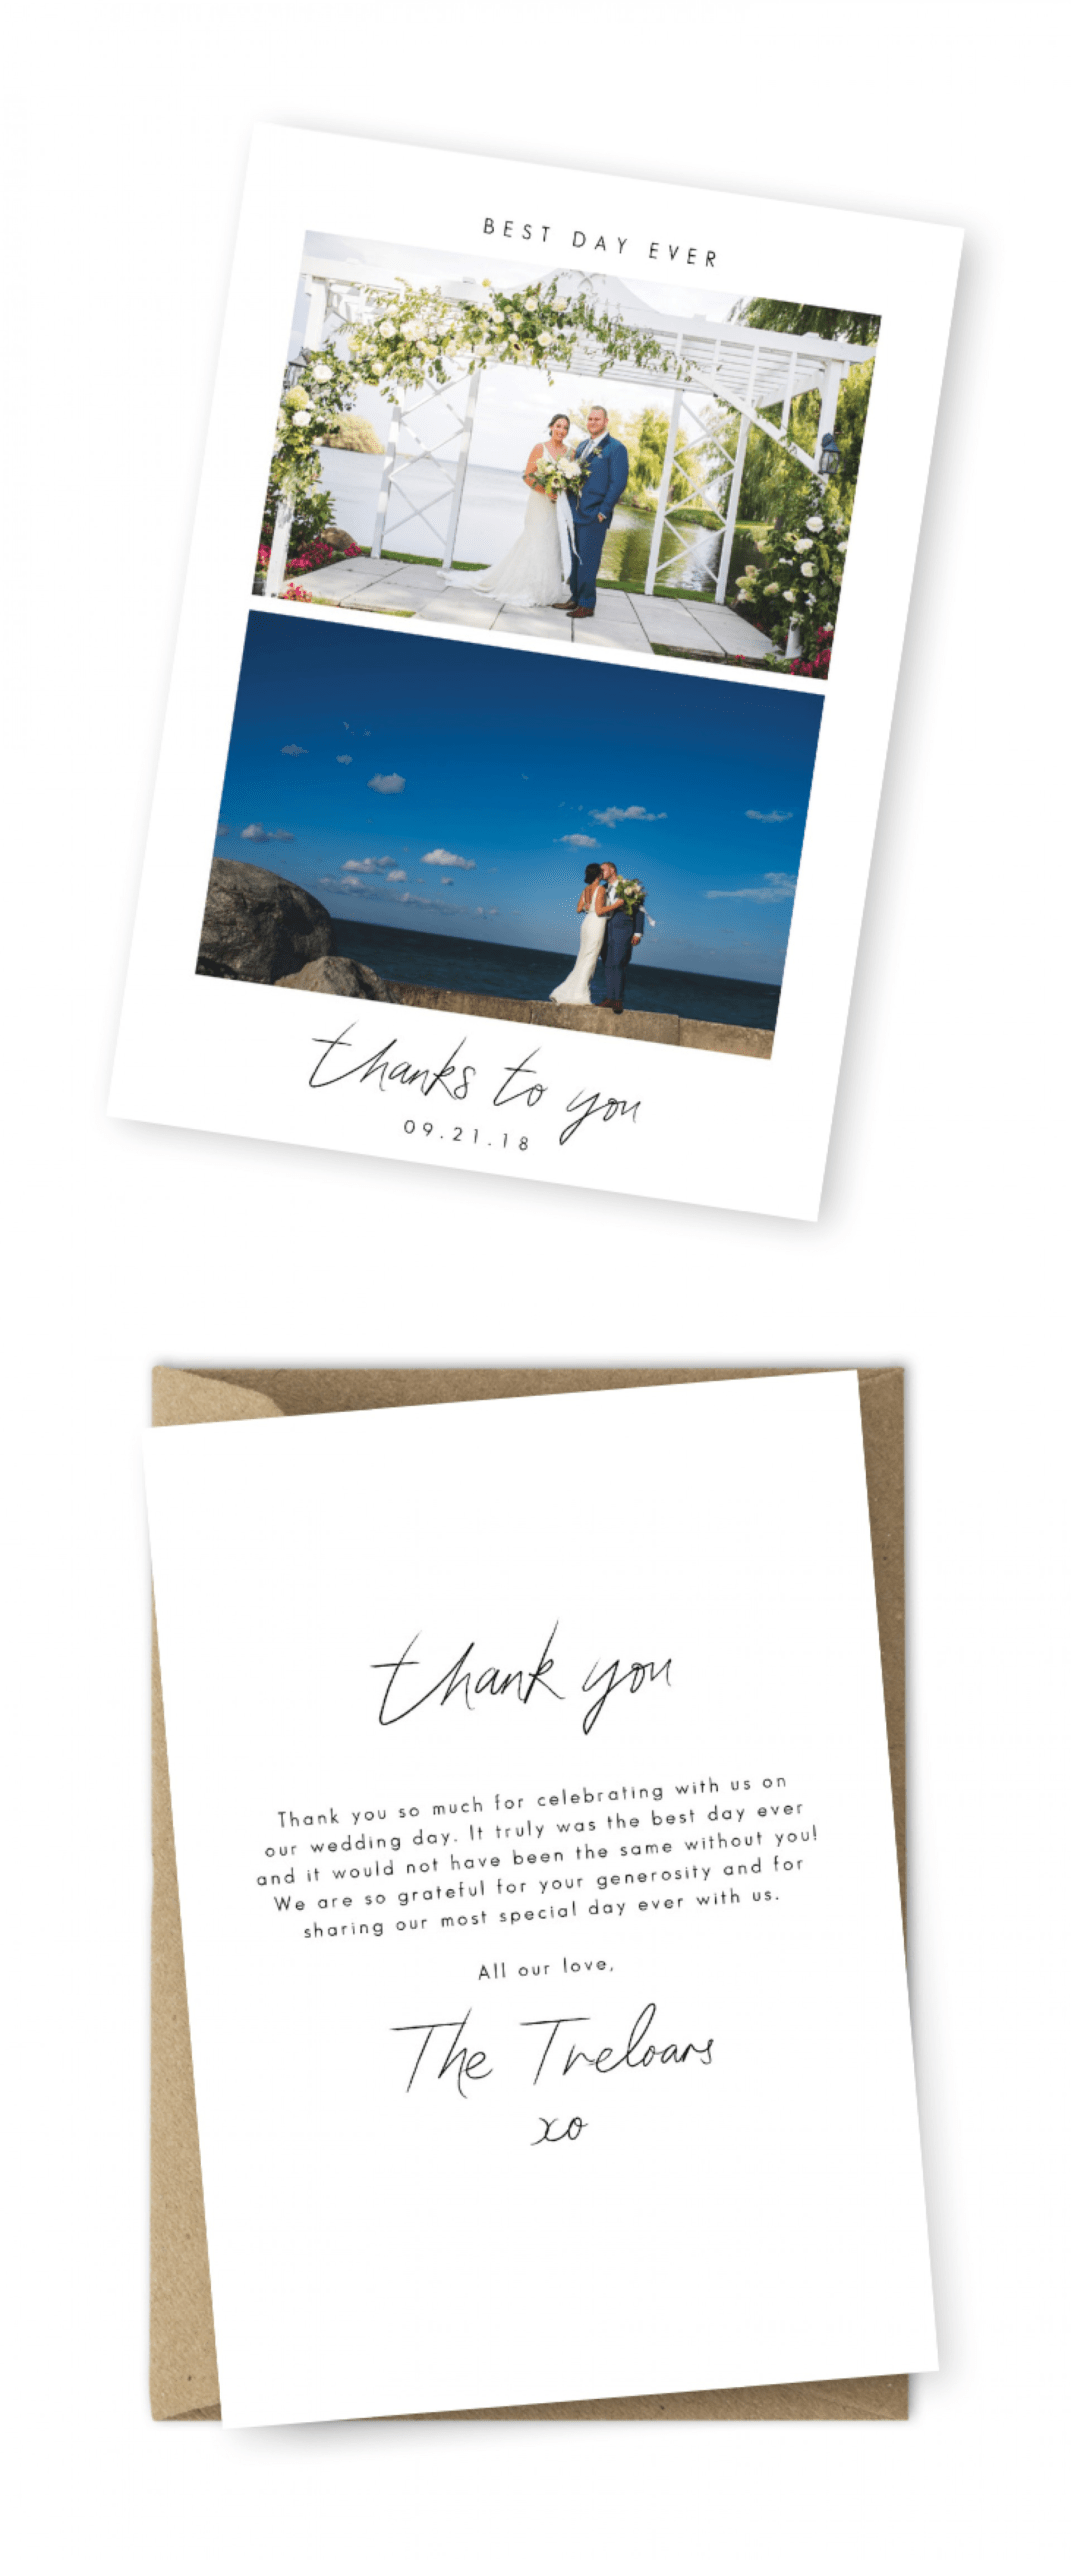 005 Wedding Thank You Card Wording Message Ideas Template Regarding Template For Wedding Thank You Cards